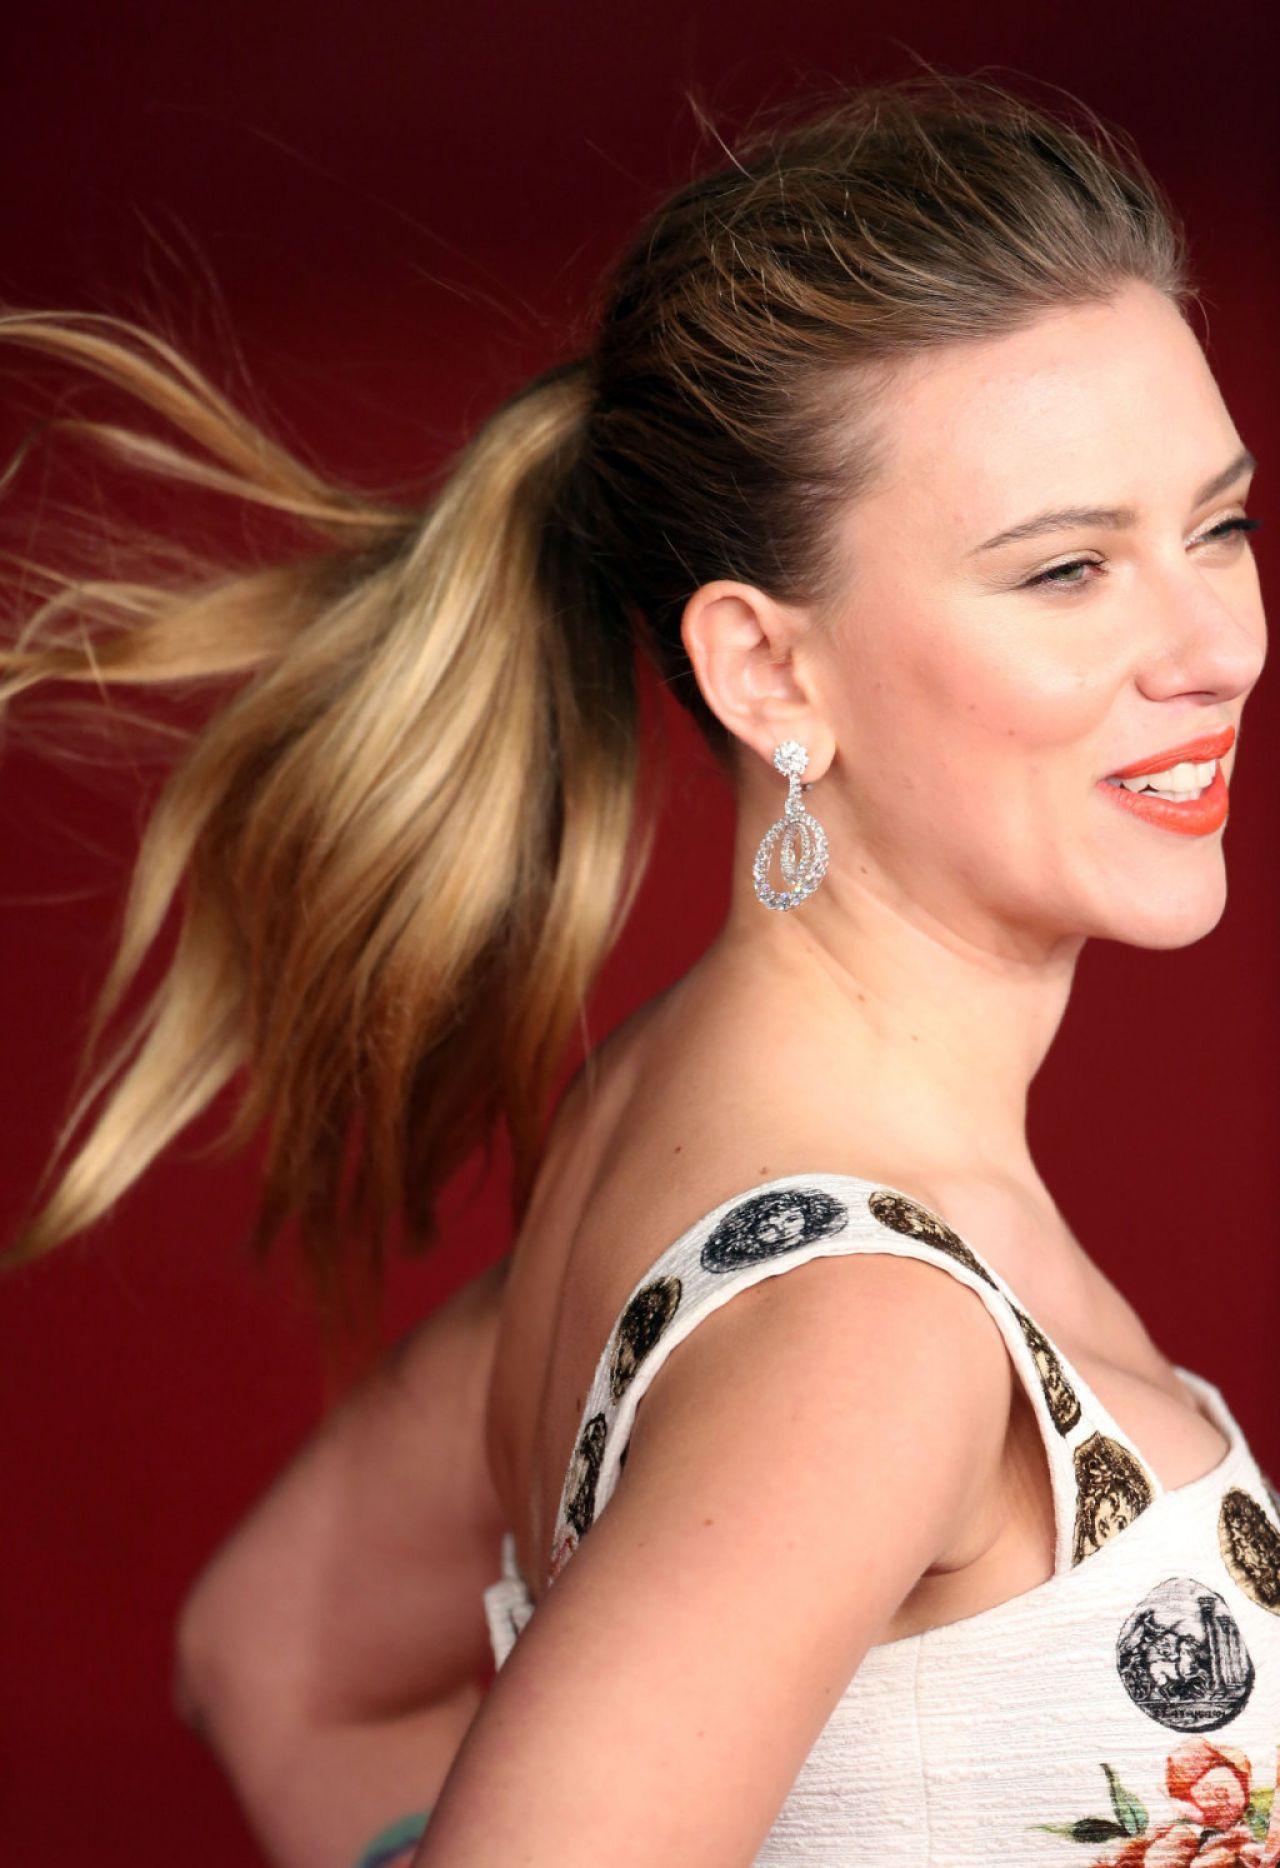 Scarlett Johansson Red Carpet Photos - HER Movie Premiere in Rome